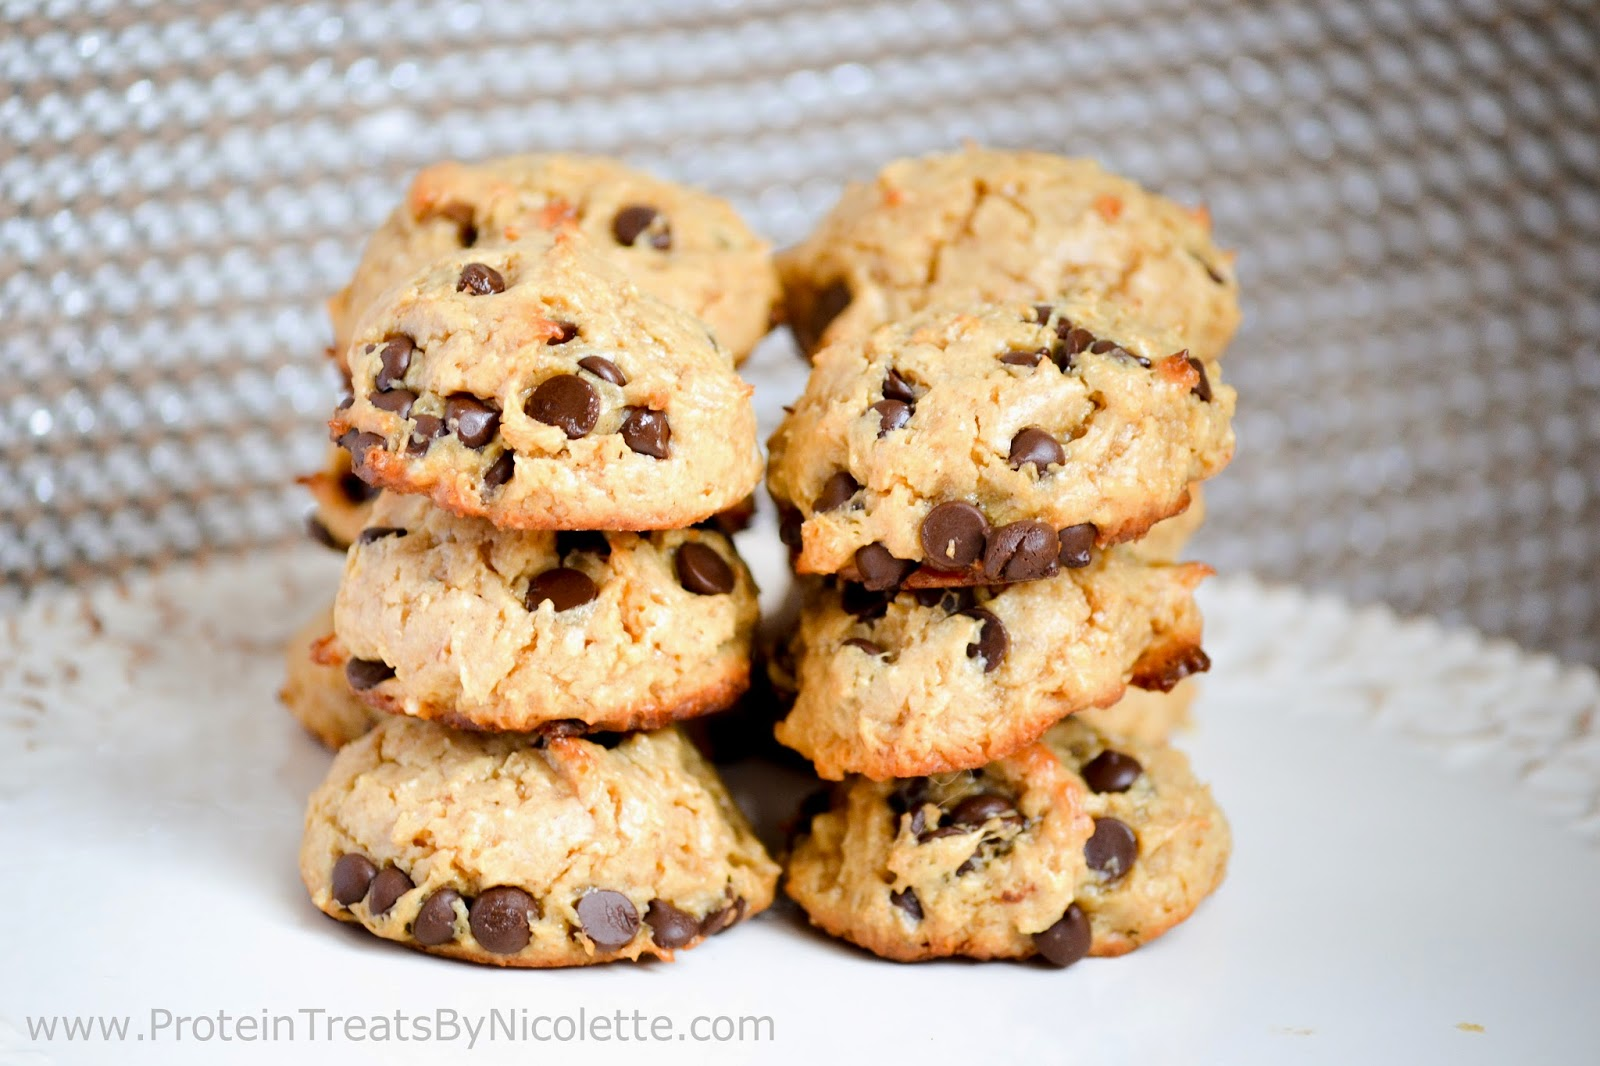 ... Treats By Nicolette : Peanut Butter Chocolate Chip Protein Cookies